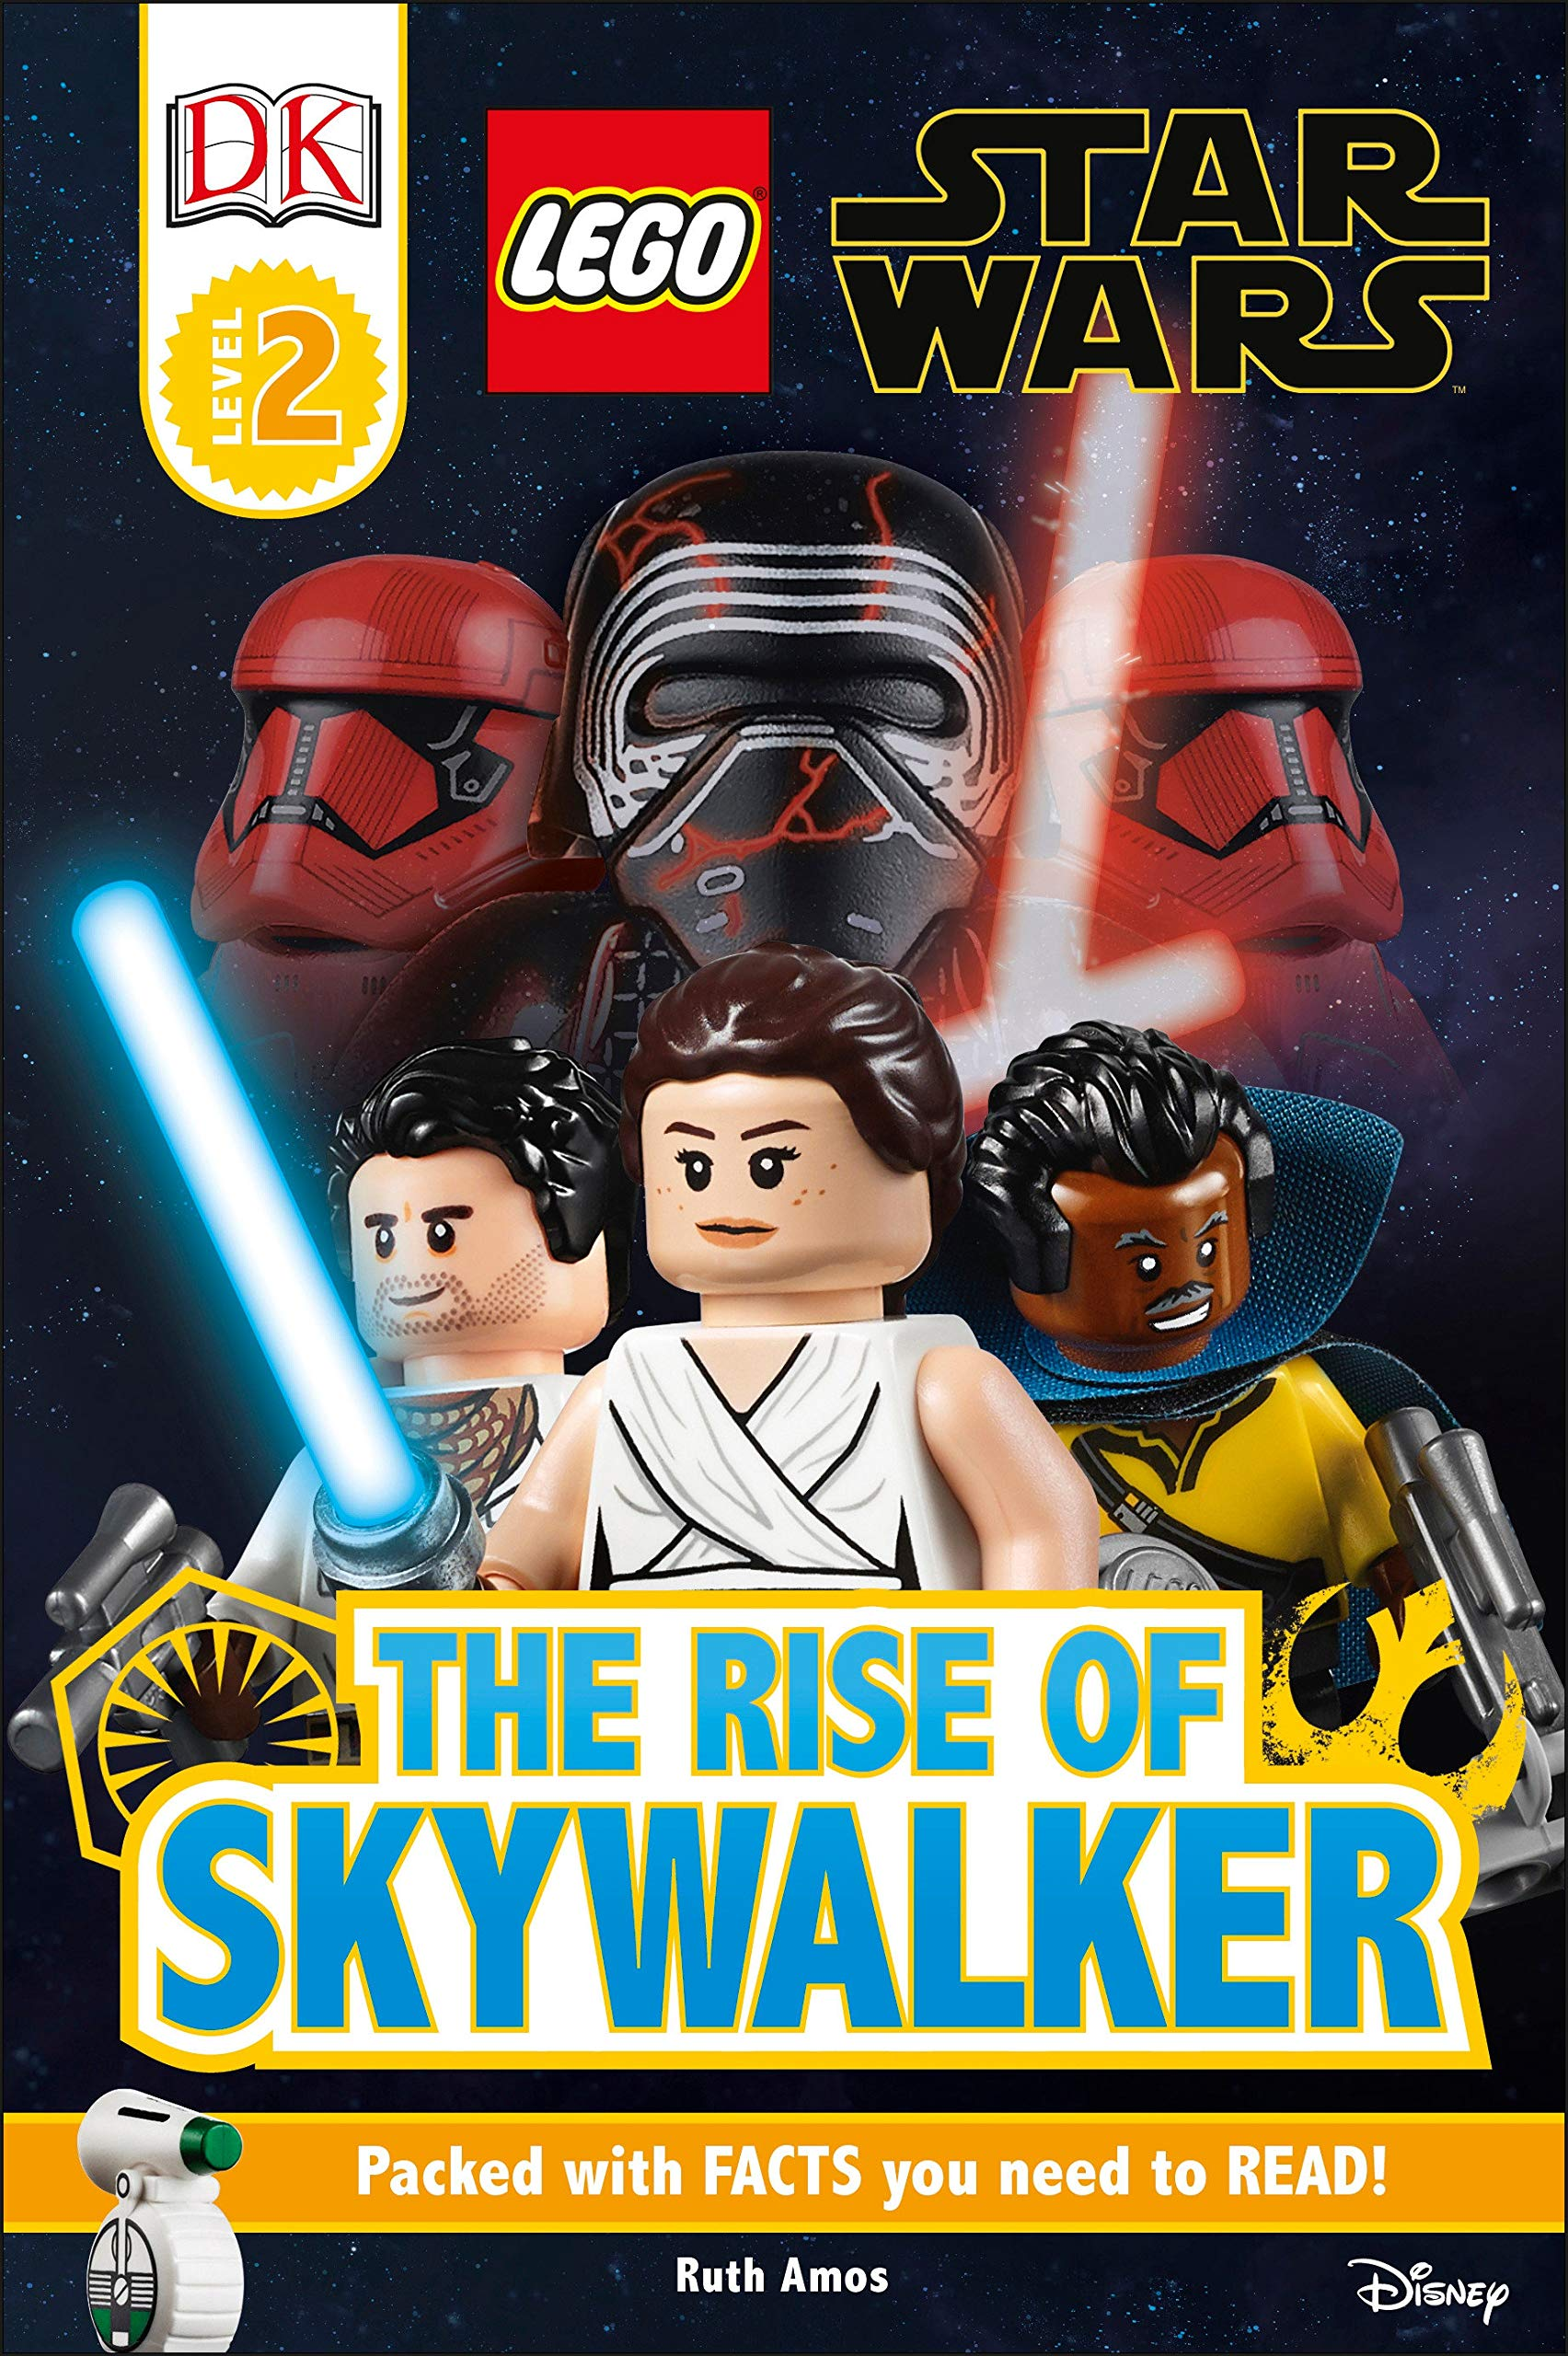 Lego Star Wars: The Rise of Skywalker